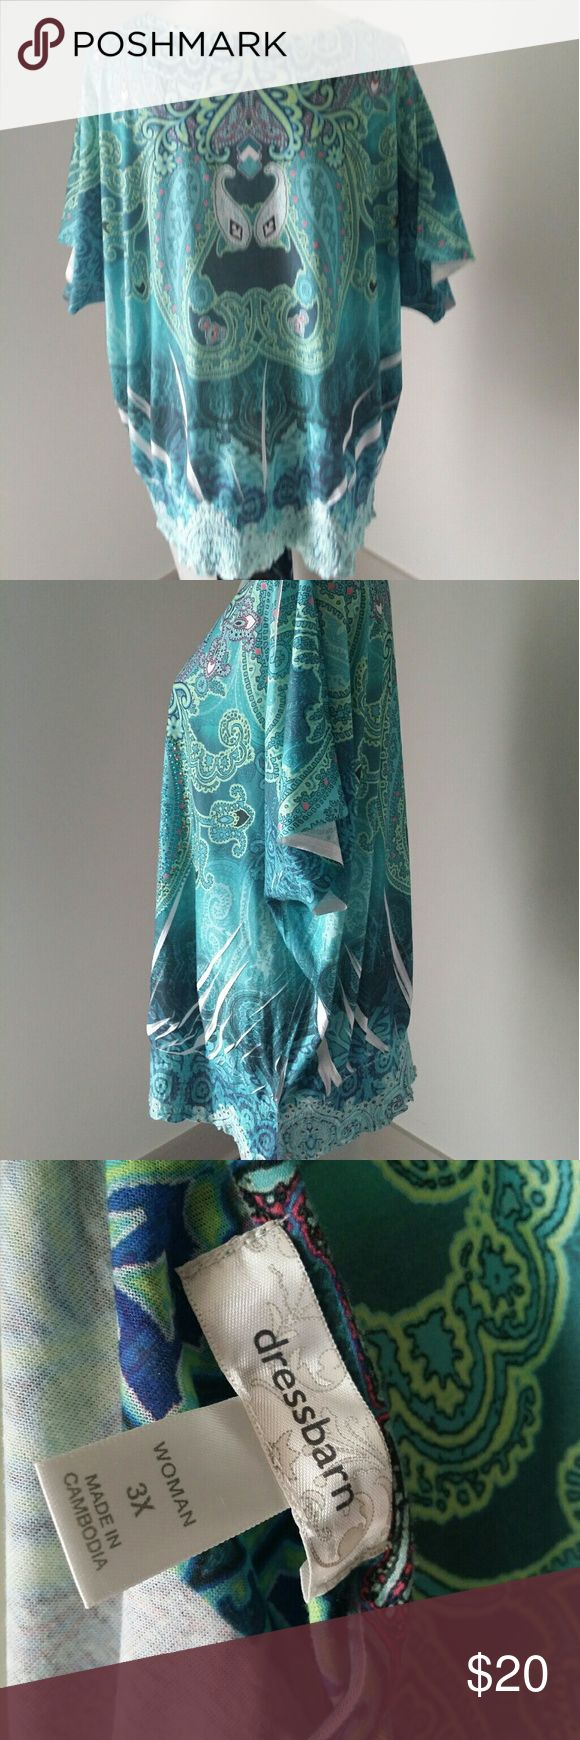 "Boho Top Festival Plus six 3x Dress Barn Dressbarn Women Blouse Top Shirt Rhinestones Peasant 3X Paisley Ombre New without tags Dressbarn Teal green, mint, coral,white, blue Women Blouse Top Shirt Rhinestones Elastic peasant hem Bohemian, Boho, Festival, peasant, tye dye Size 3X Paisley Short sleeve Armpit to armpit 29.5"" Shoulder to hem 29.5"" Construction is good. Dress Barn Tops Tunics"